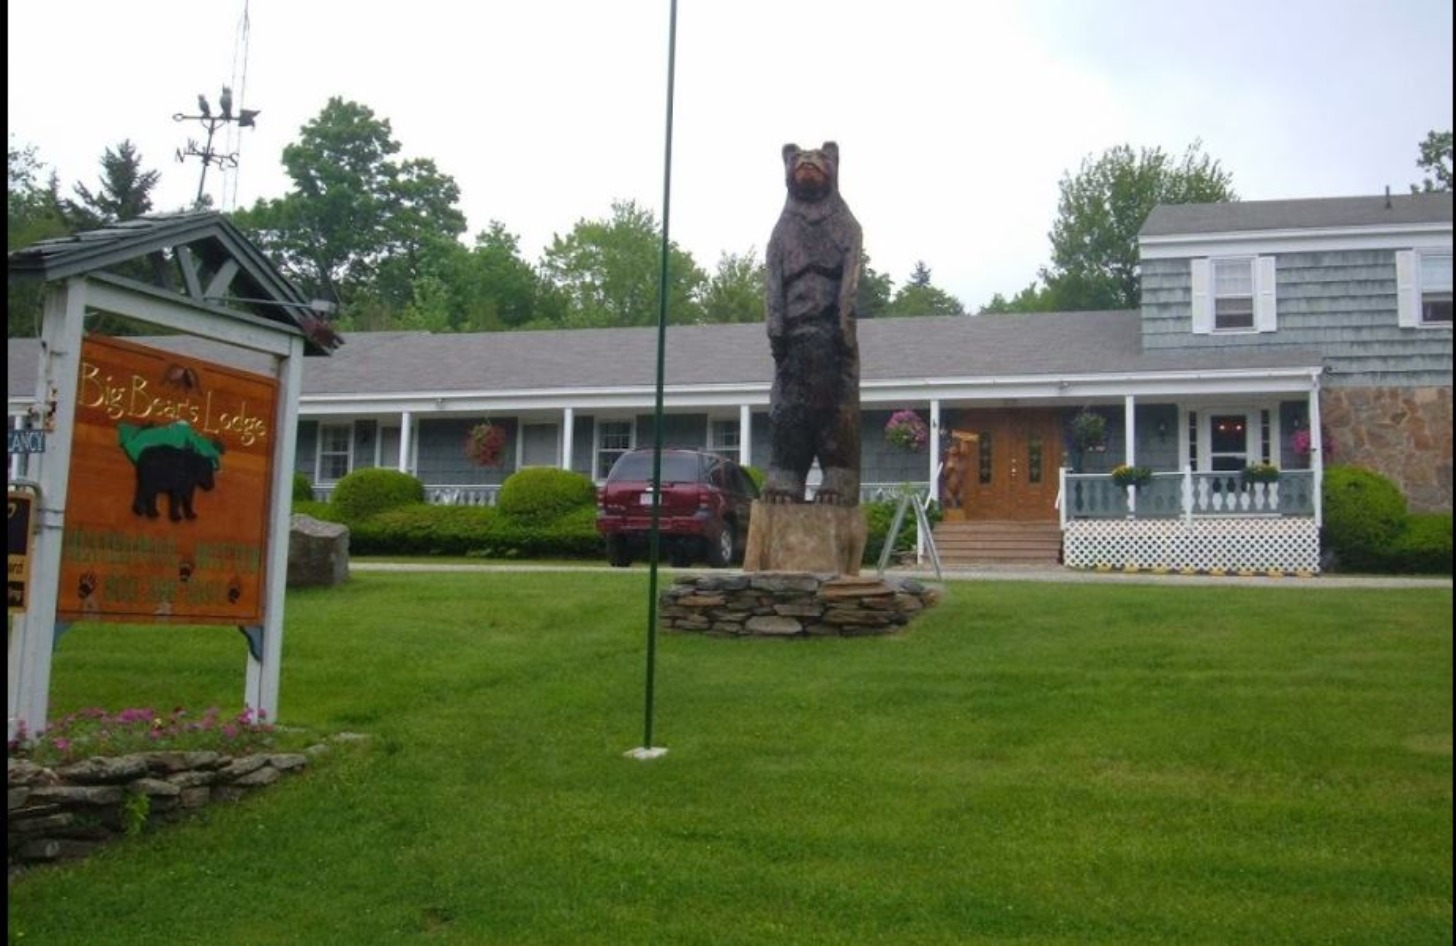 A person standing in front of a house at Big Bears Lodge.